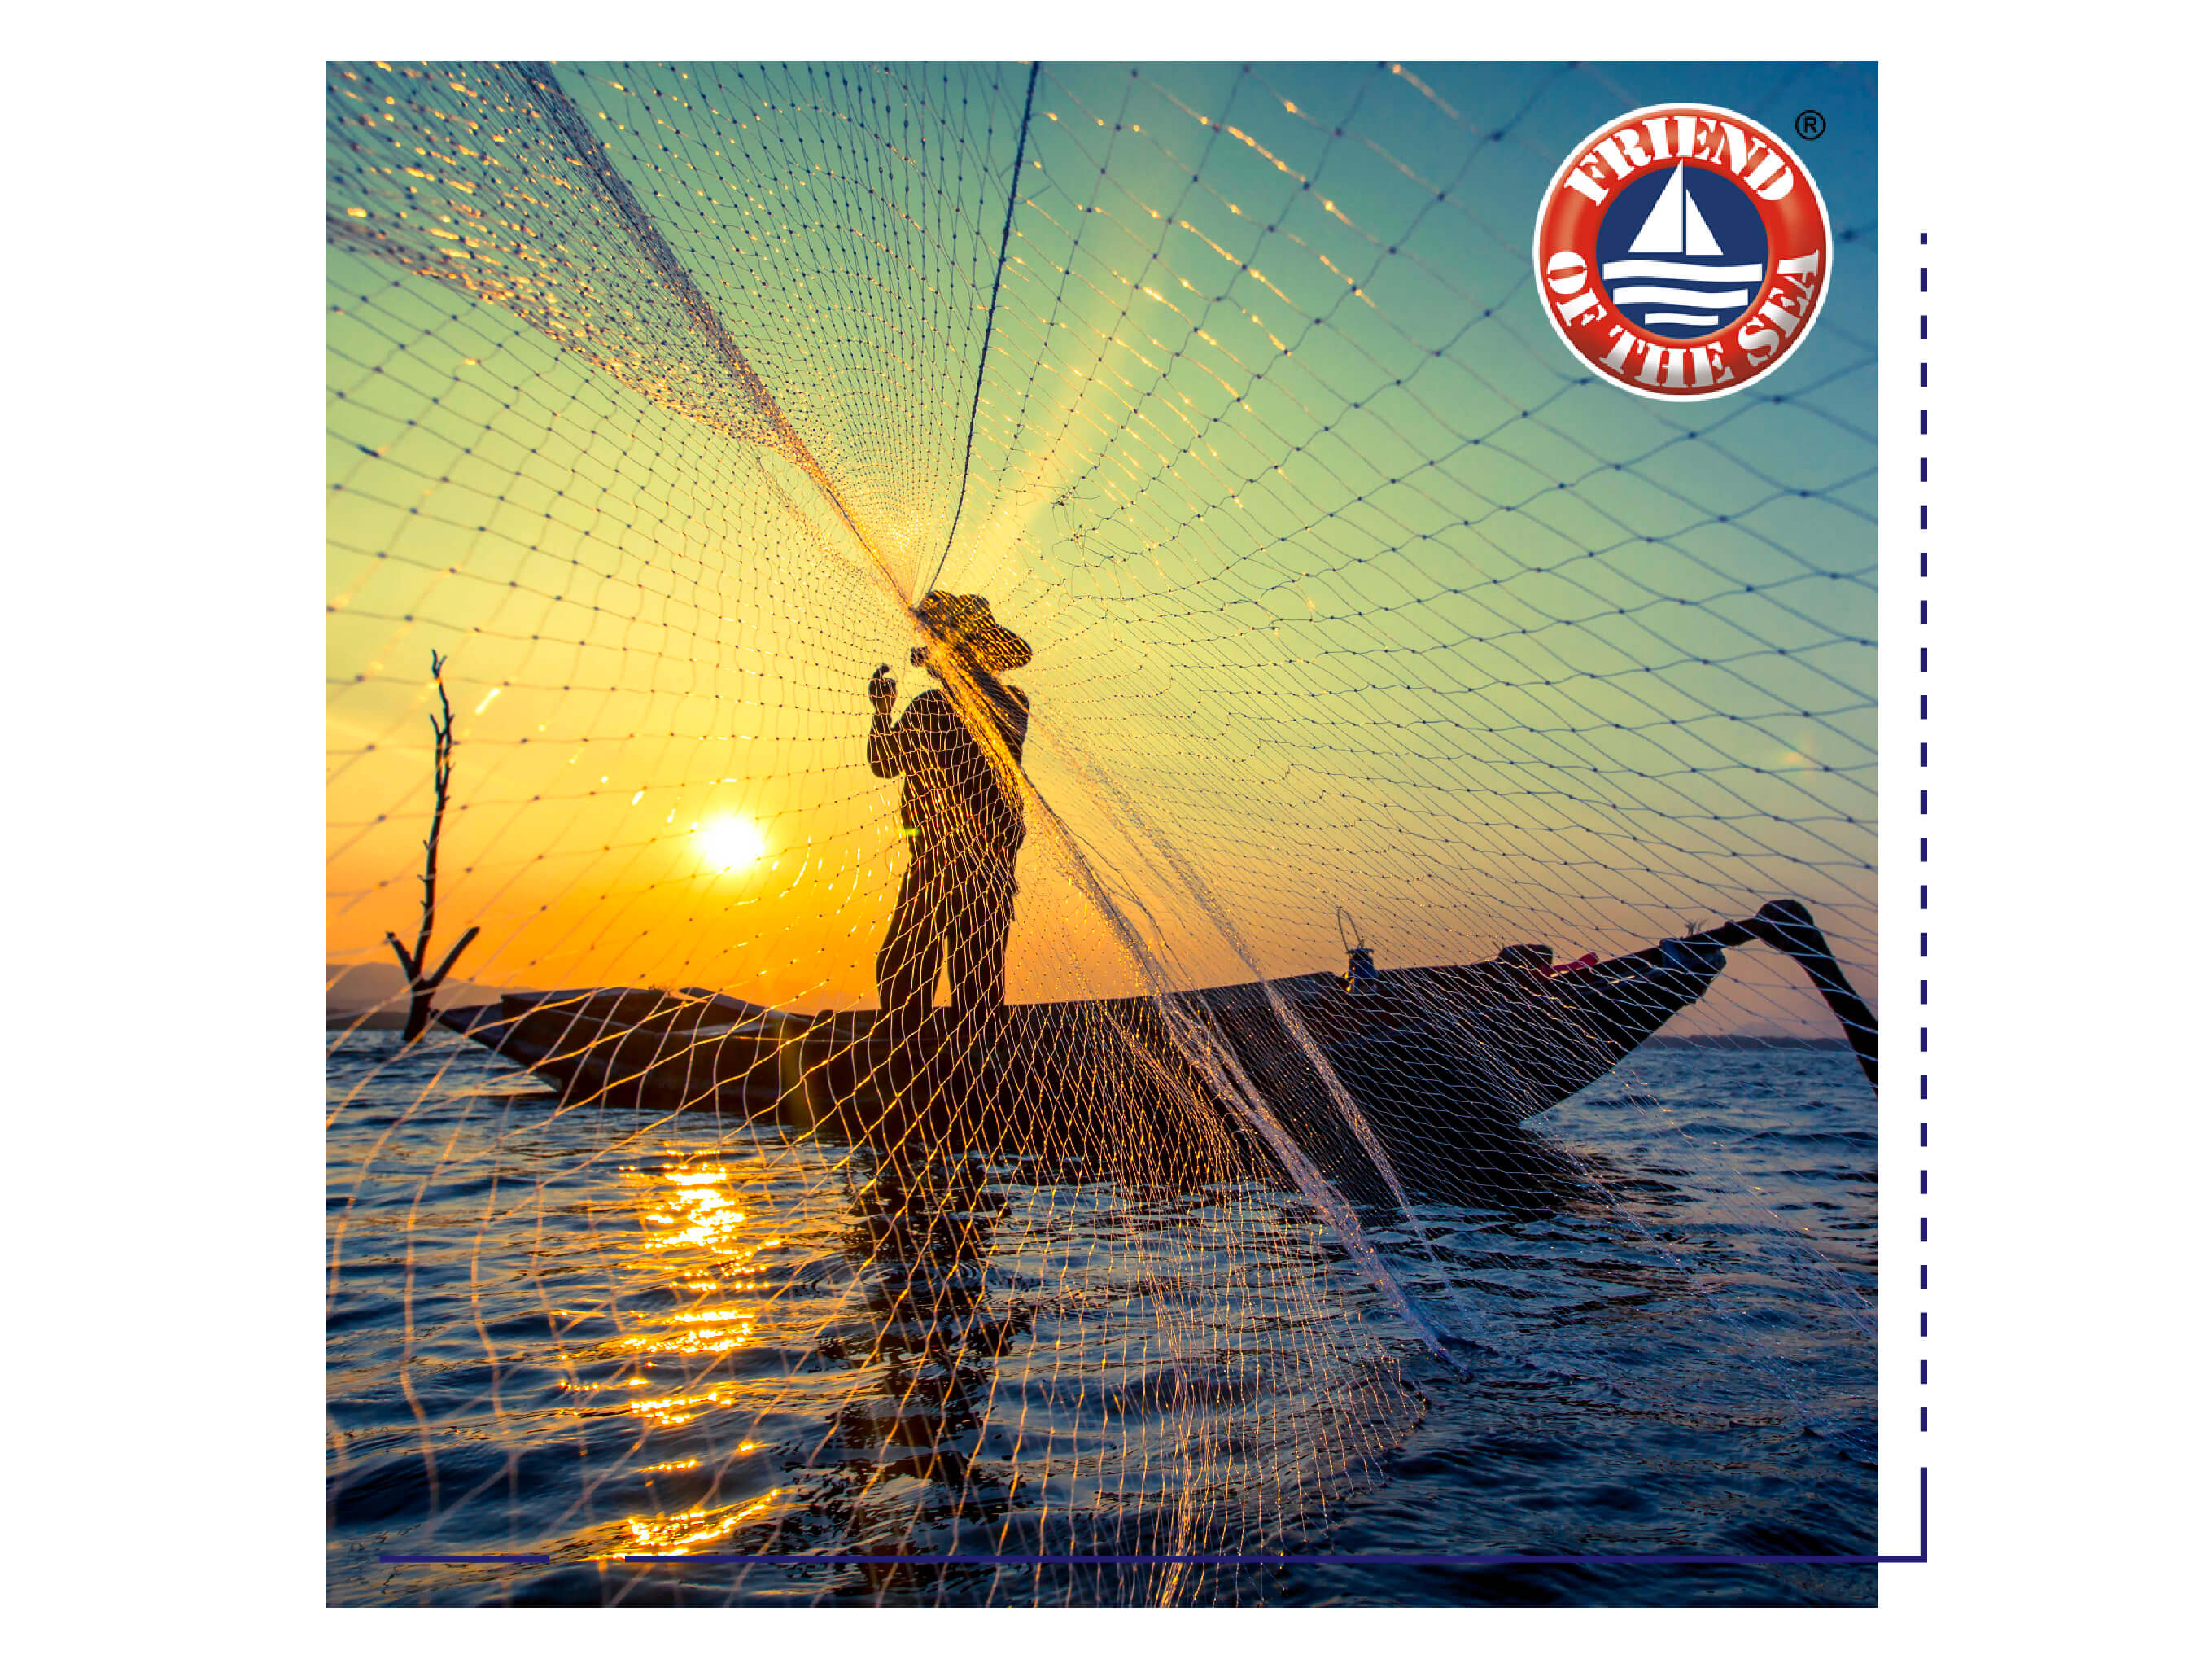 Fisherman on a boat, throwing fishing net